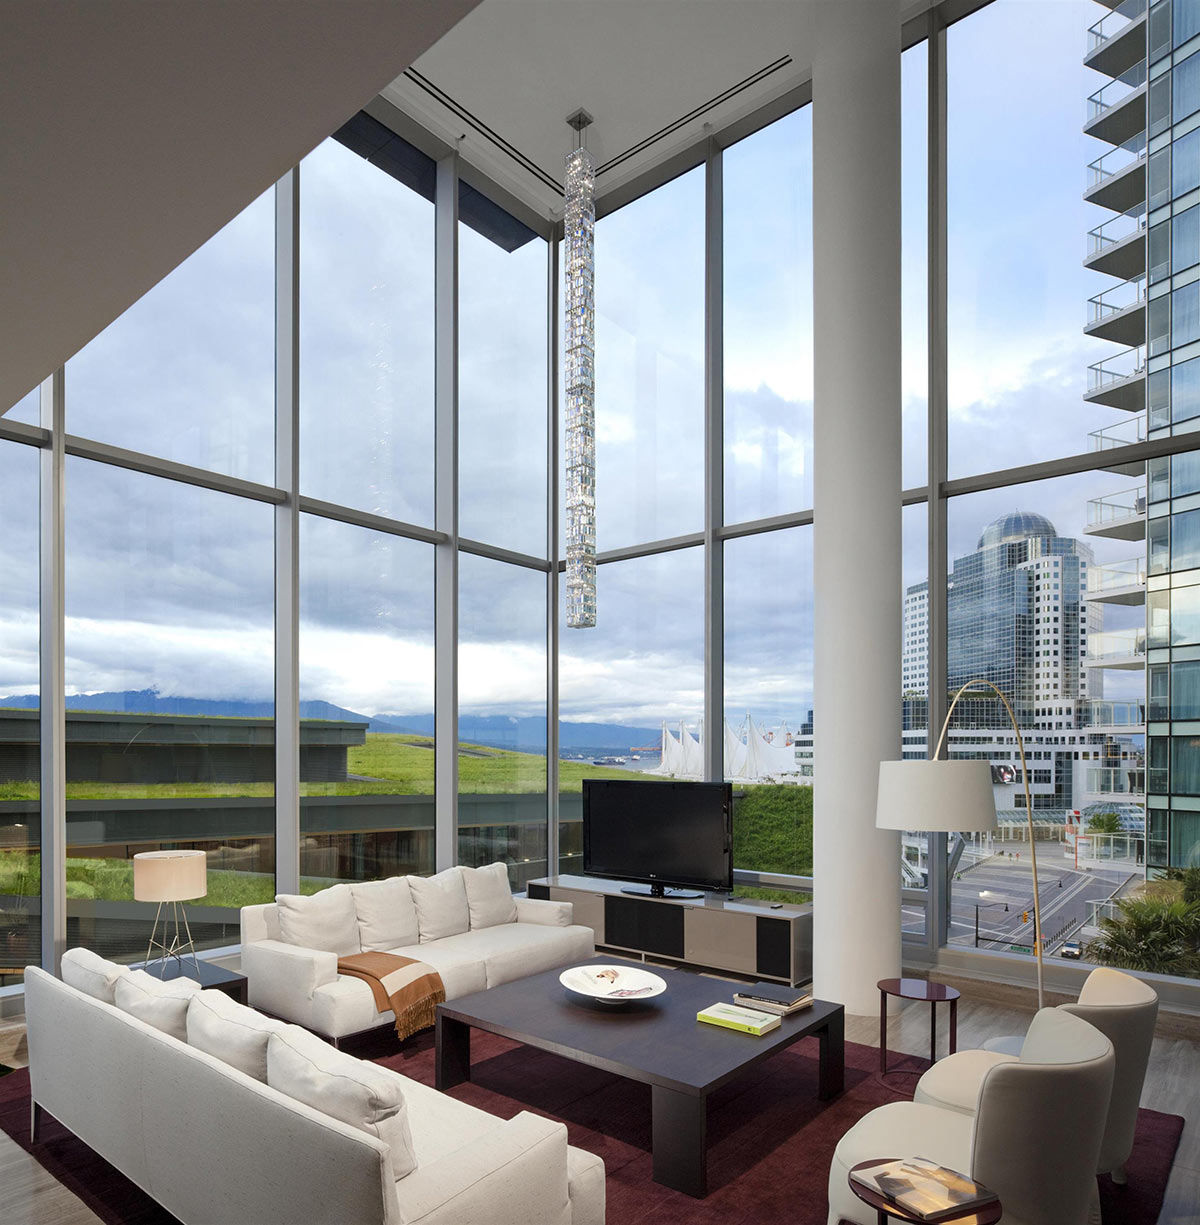 Chairman's-Suite-Living-Room_482525_high.jpg